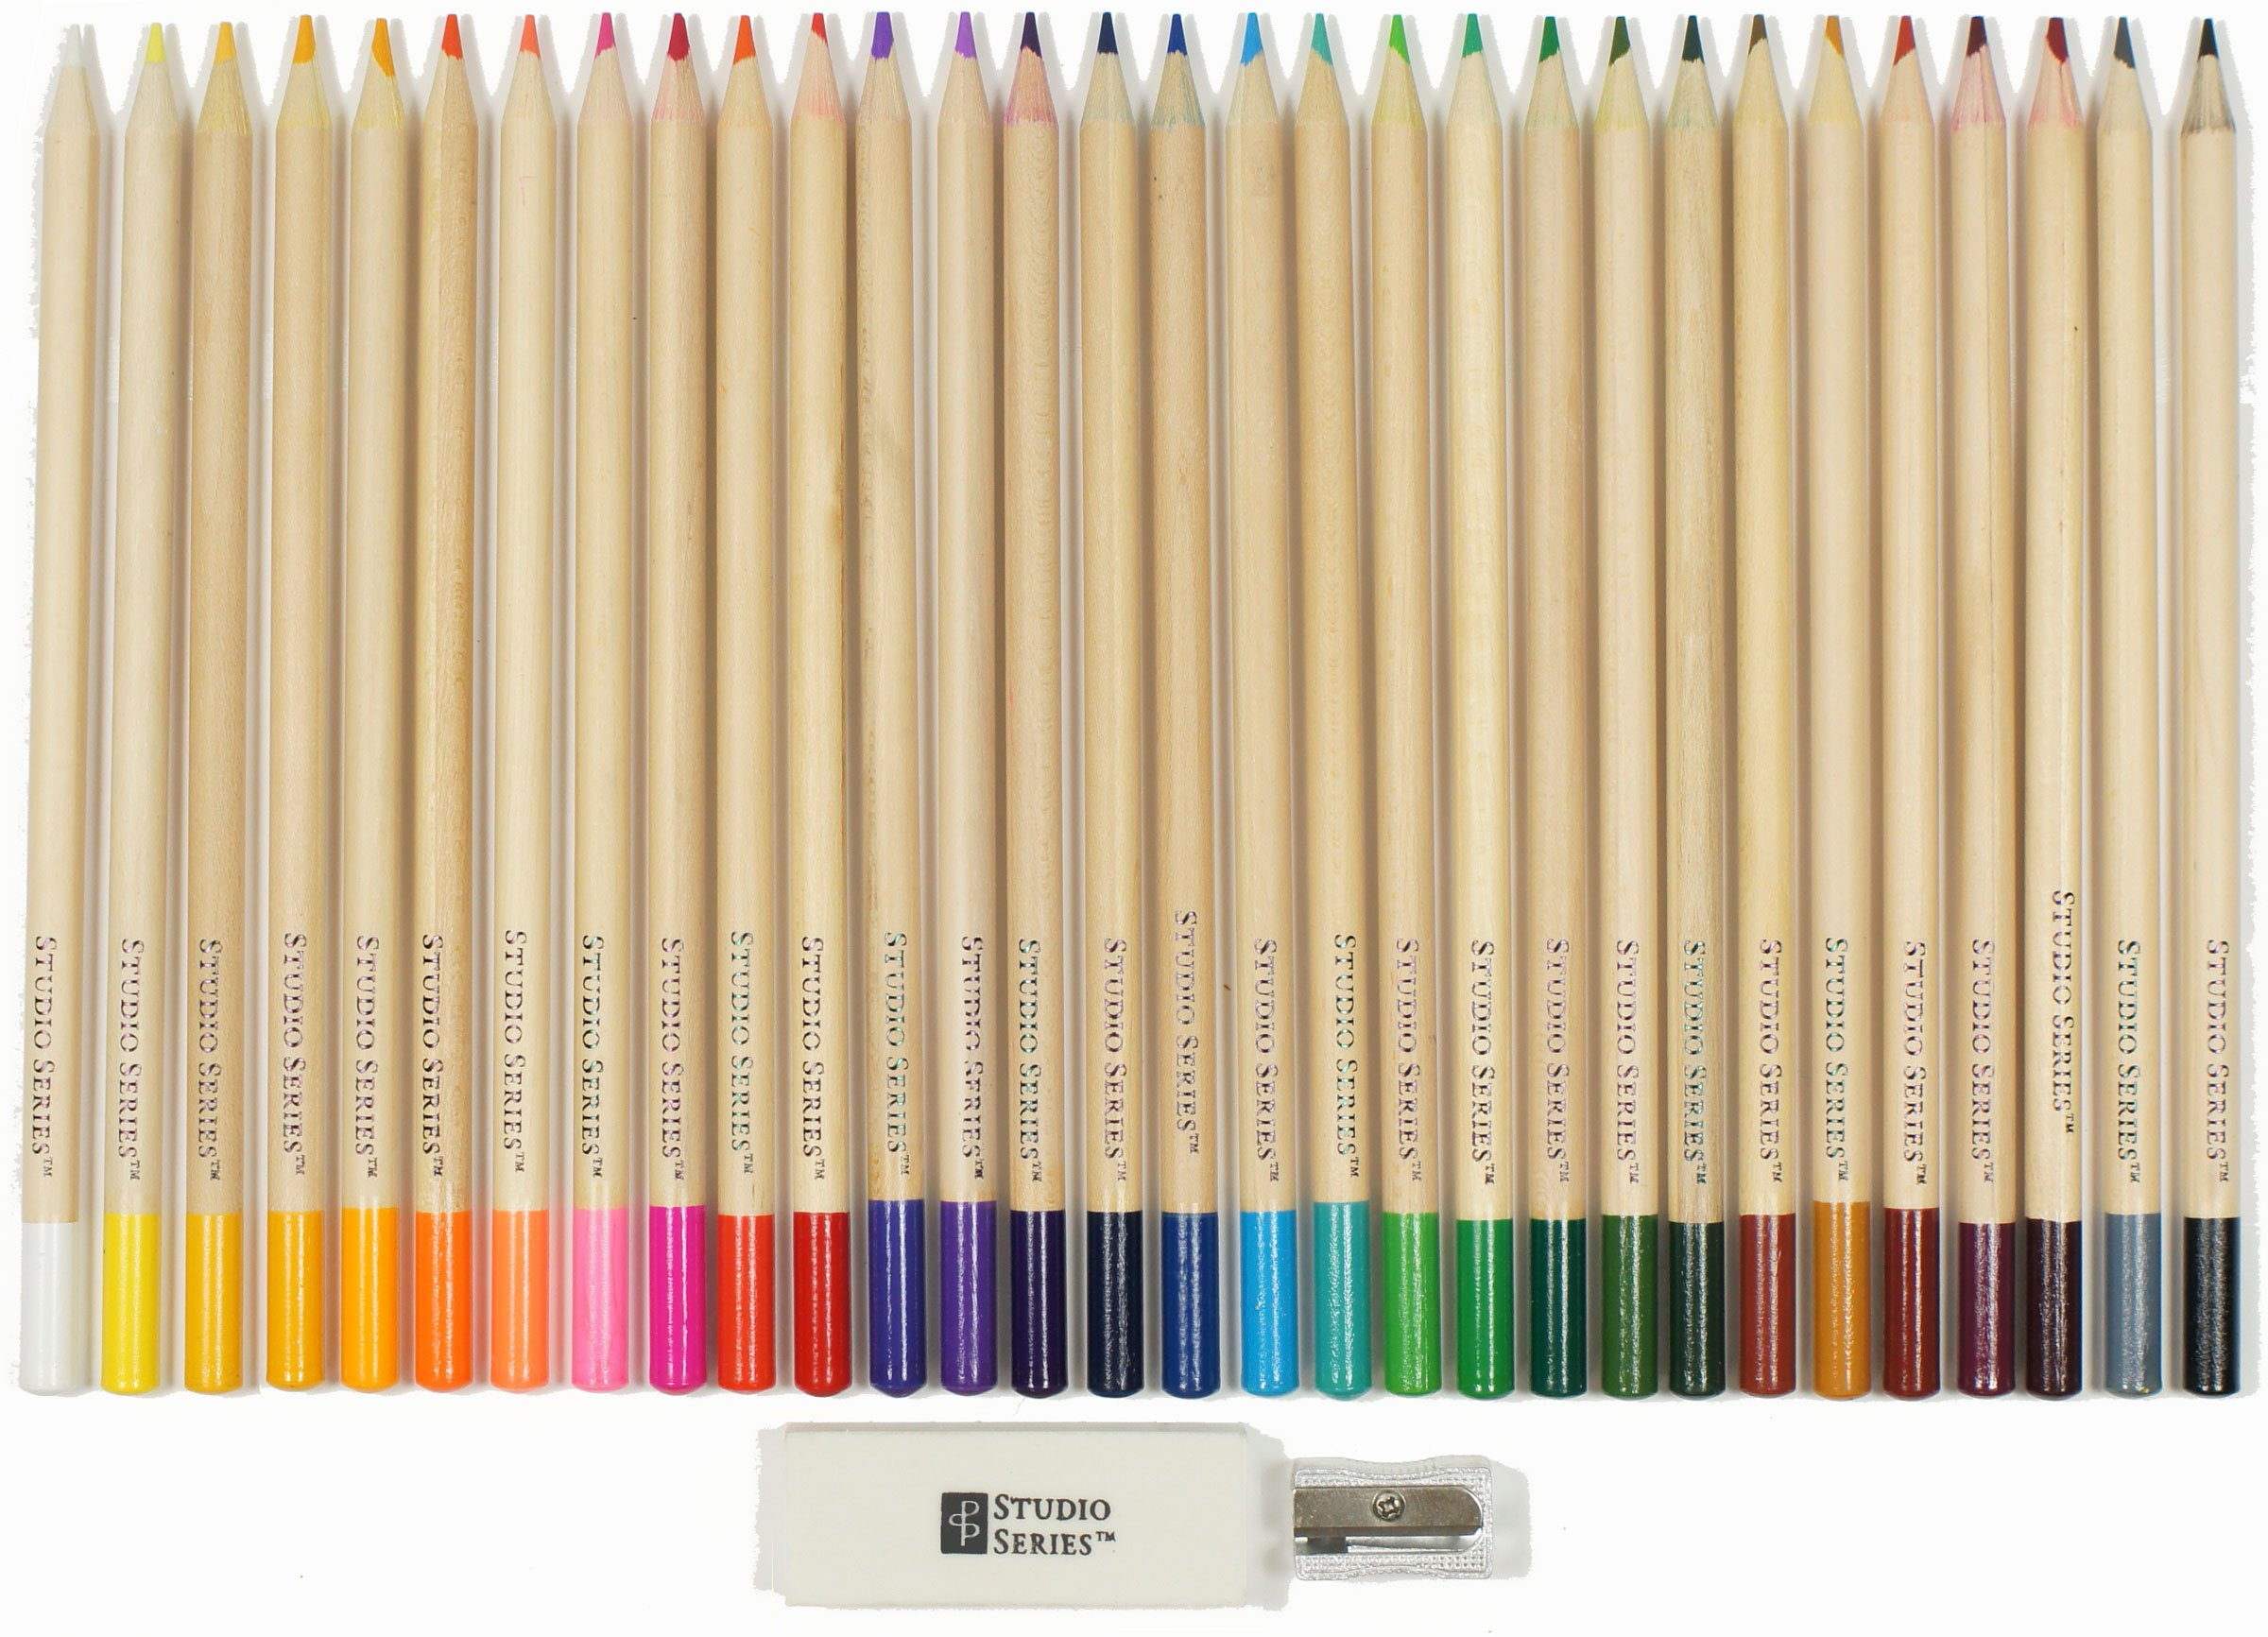 Studio Series Colored Pencil Set (Set of 30) (Multilingual Edition ...